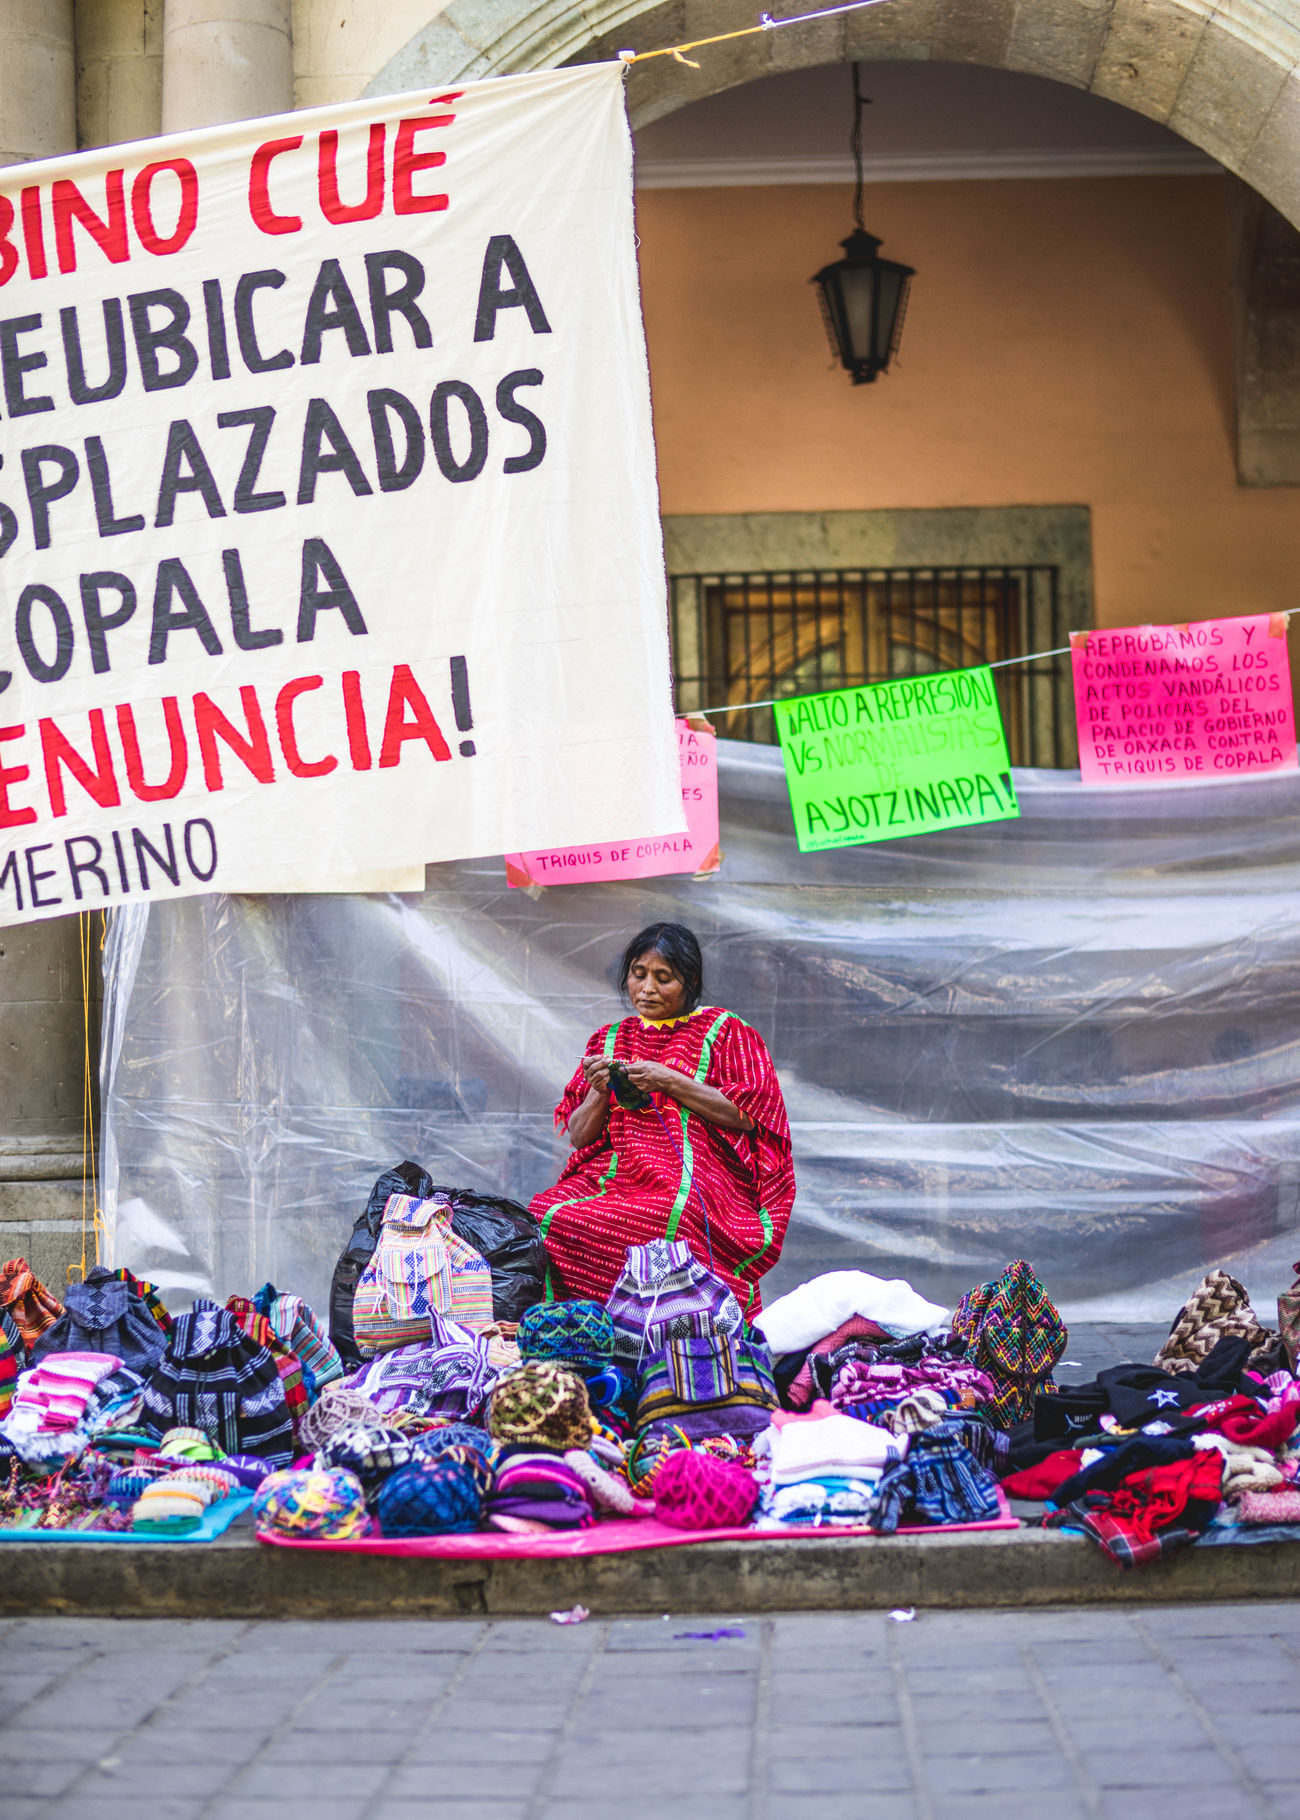 Ayotzinapa Candid Candid Photography Candid Portraits Casual Clothing Choice Day Display Indigenous  Leisure Activity Lifestyles Market Market Stall Mexico Multi Colored Outdoors Retail  Shop Store Street Photography Streetphotography Travel Travel Destinations Travel Photography Variation